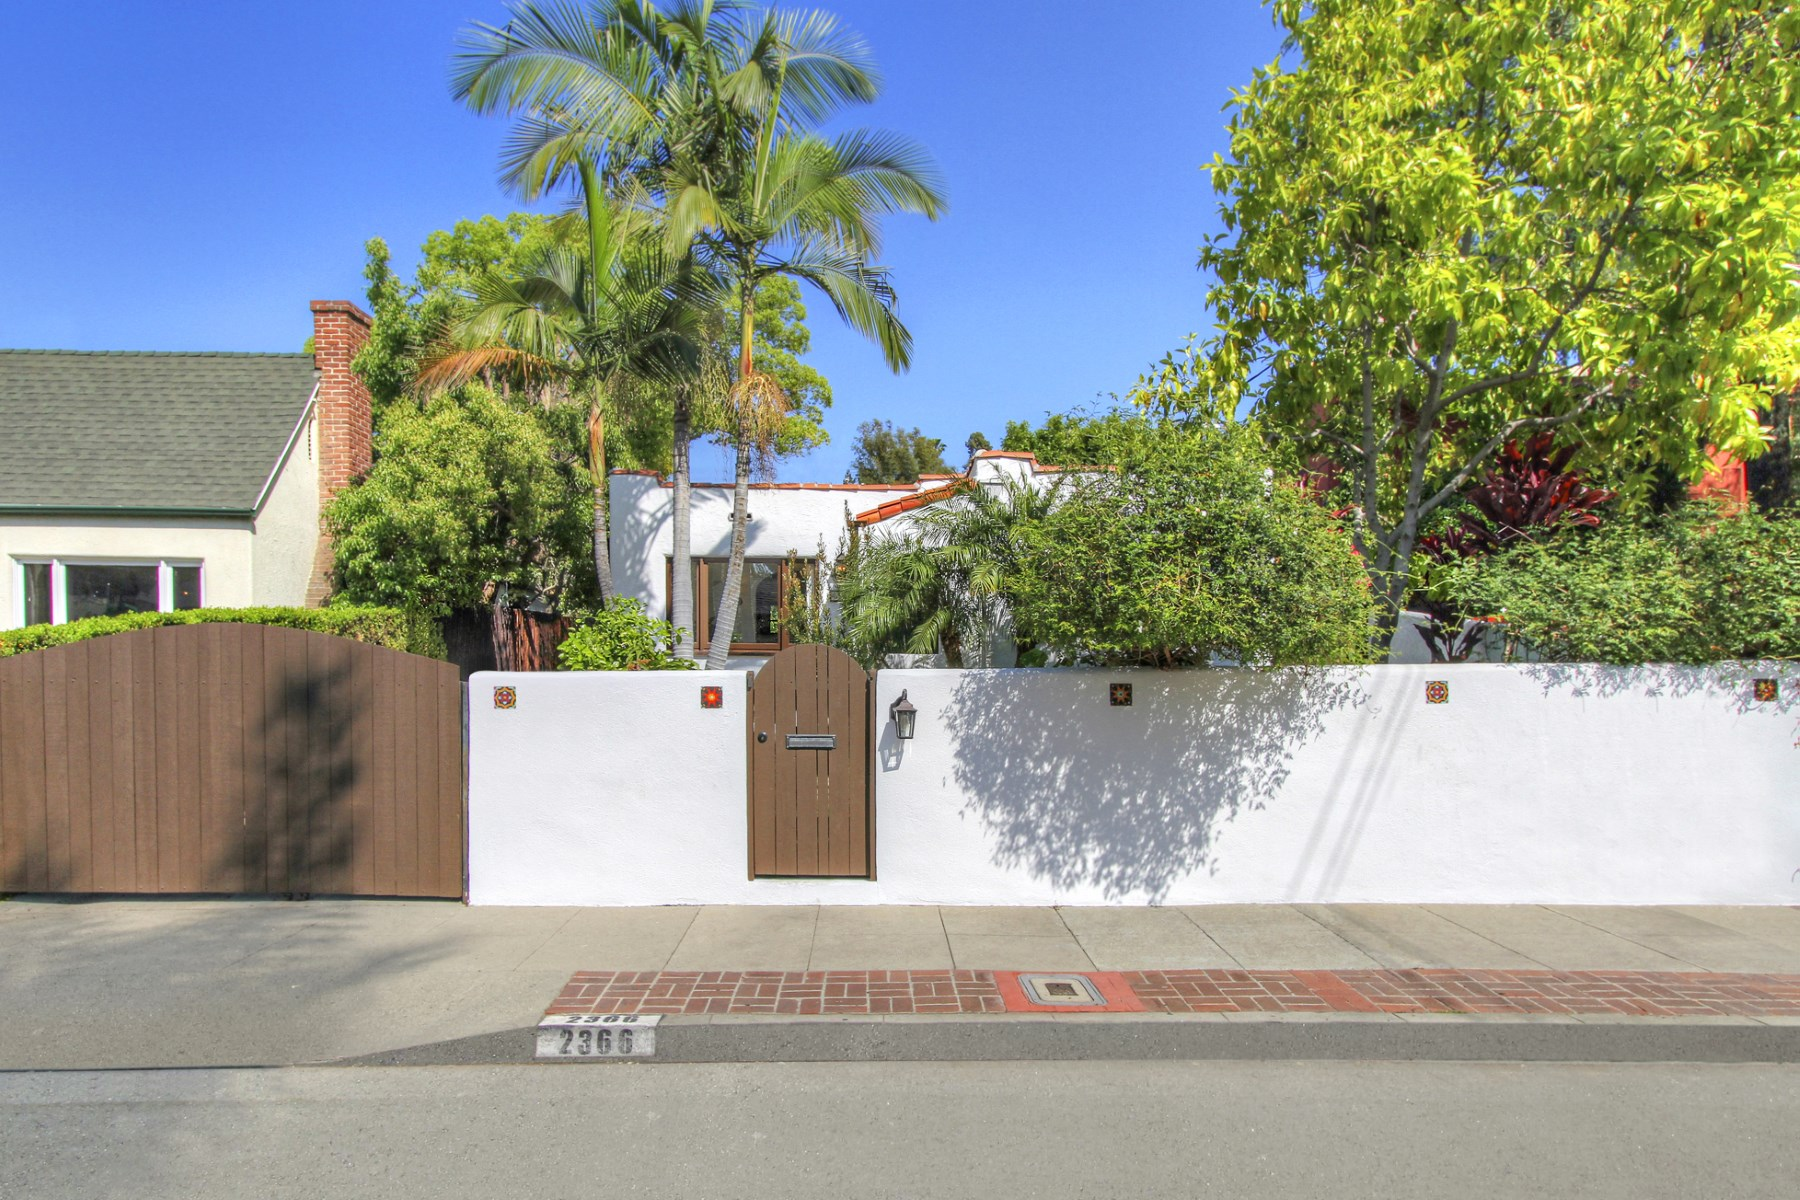 Single Family Home for Sale at 2366 Edgewater Terrace Silver Lake, Los Angeles, California, 90039 United States